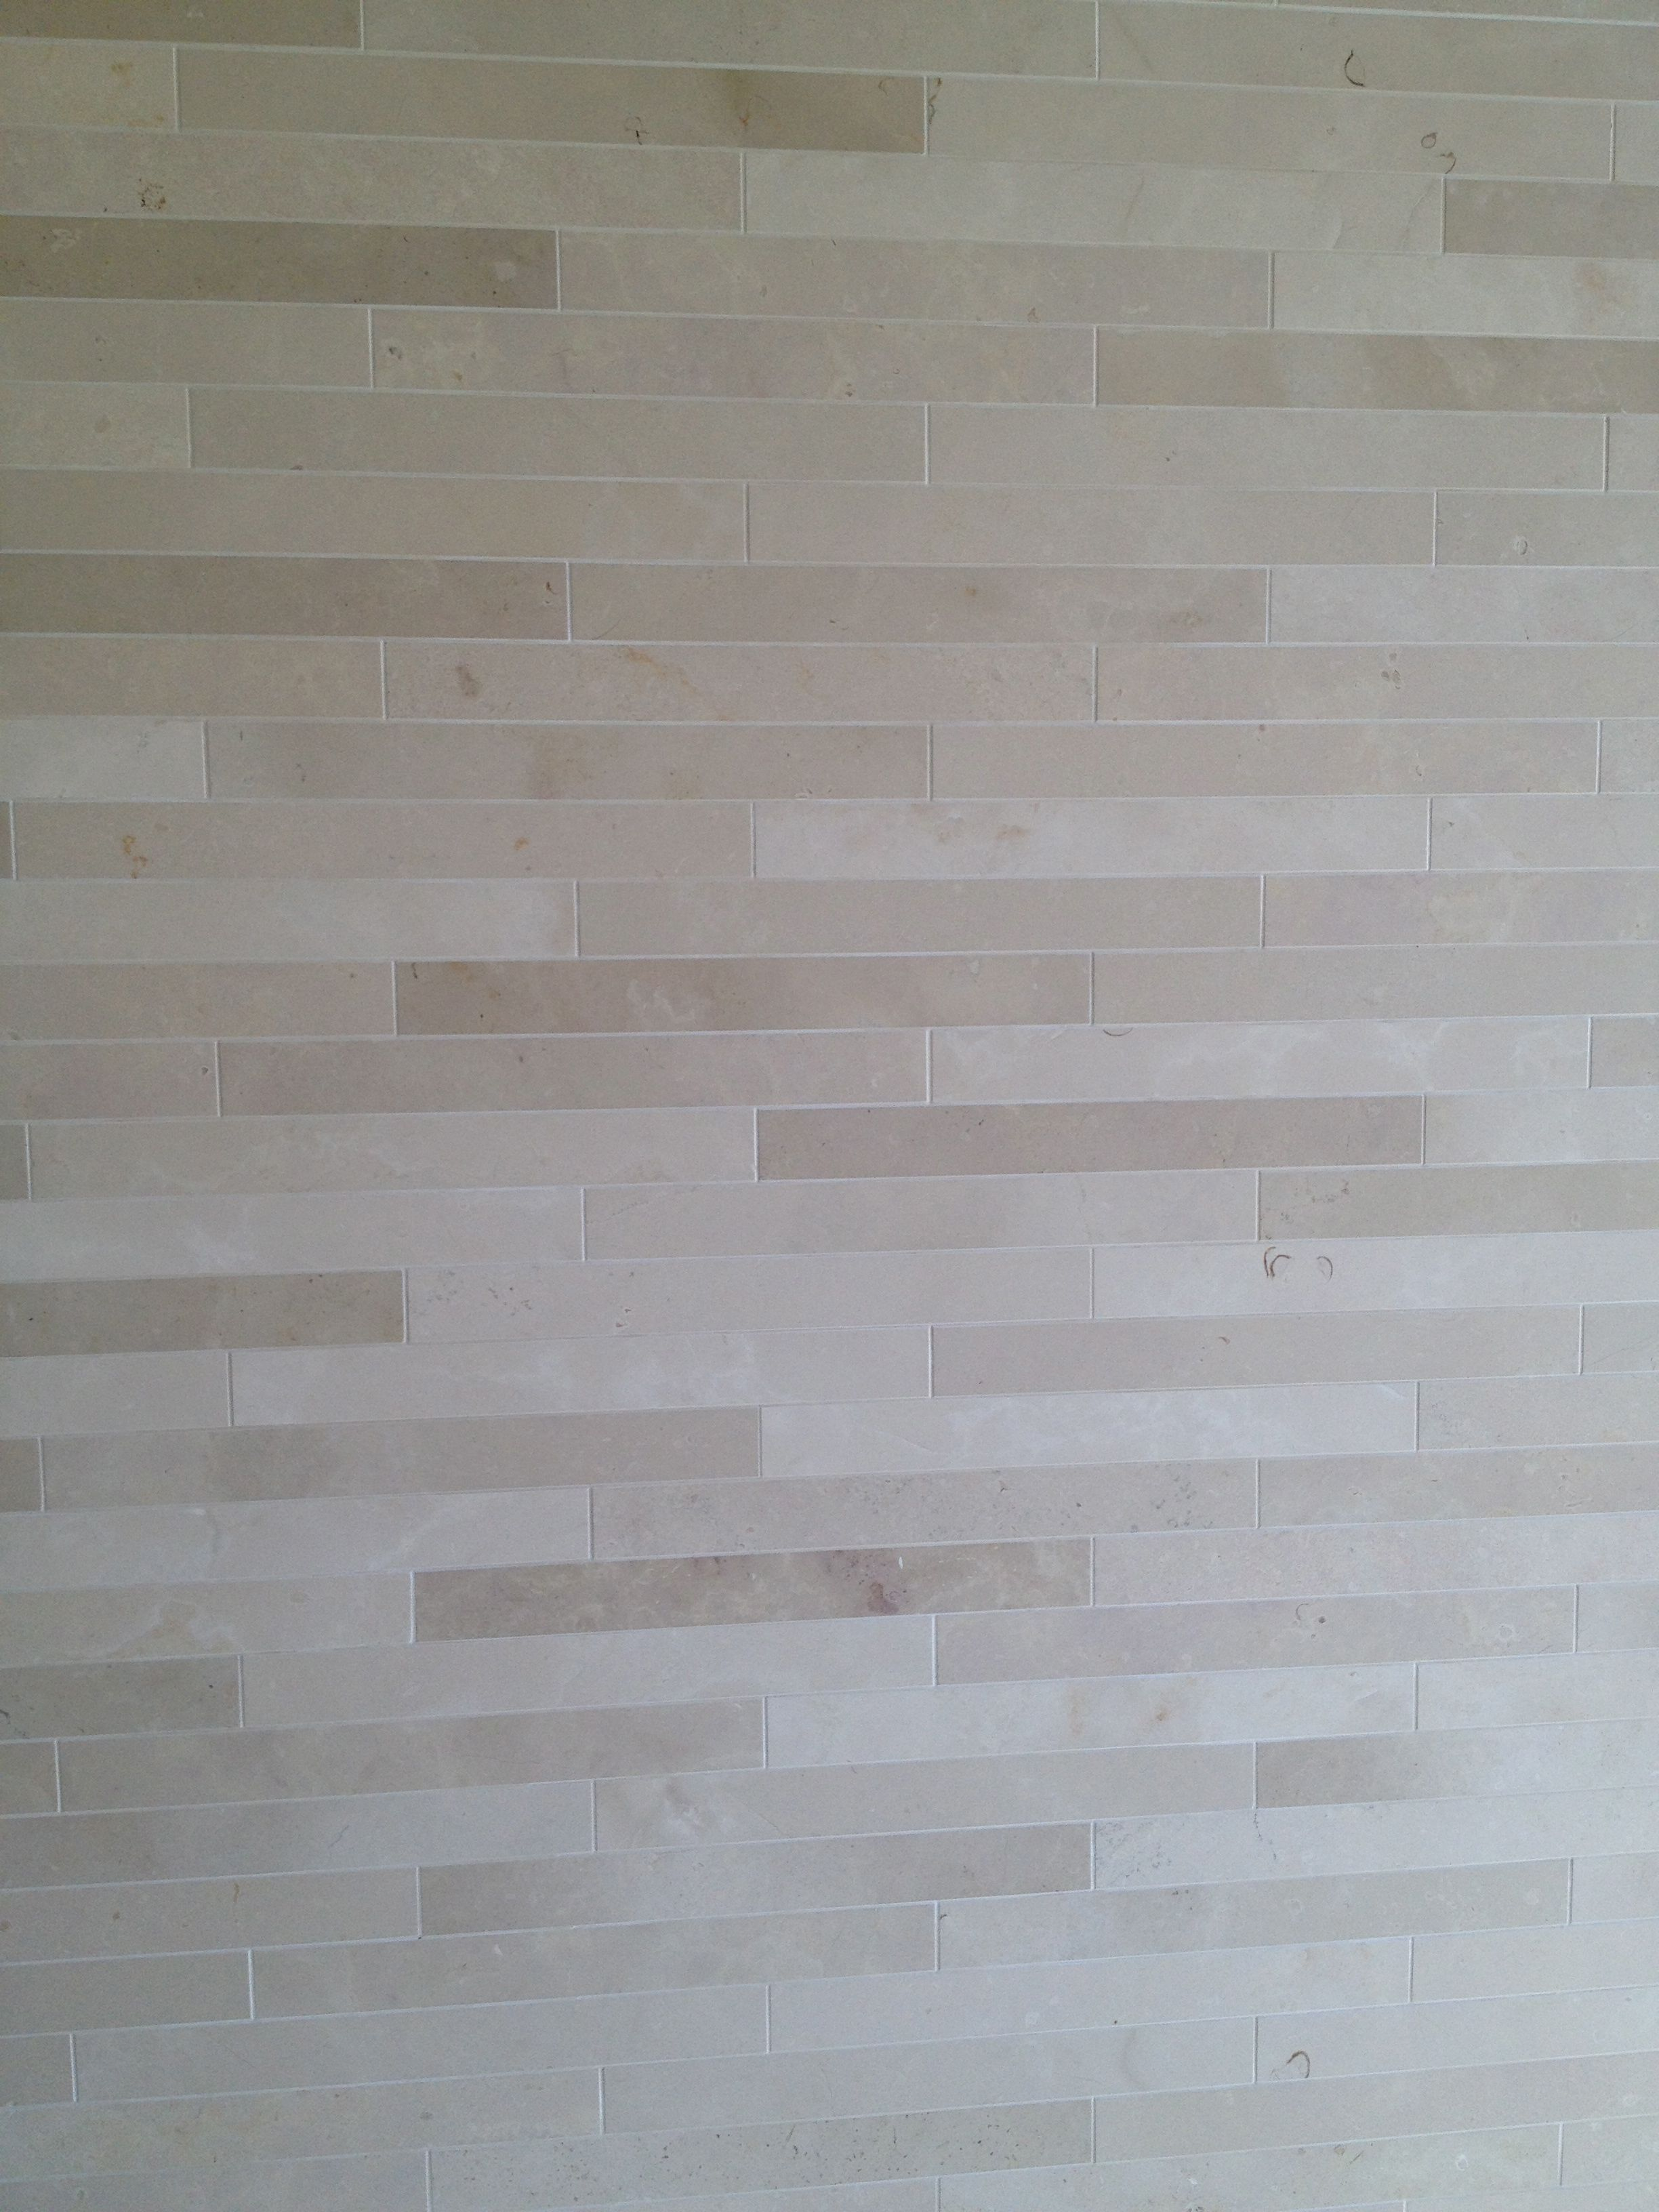 natural stone tile in a long format creates a luxurious feel in your ...